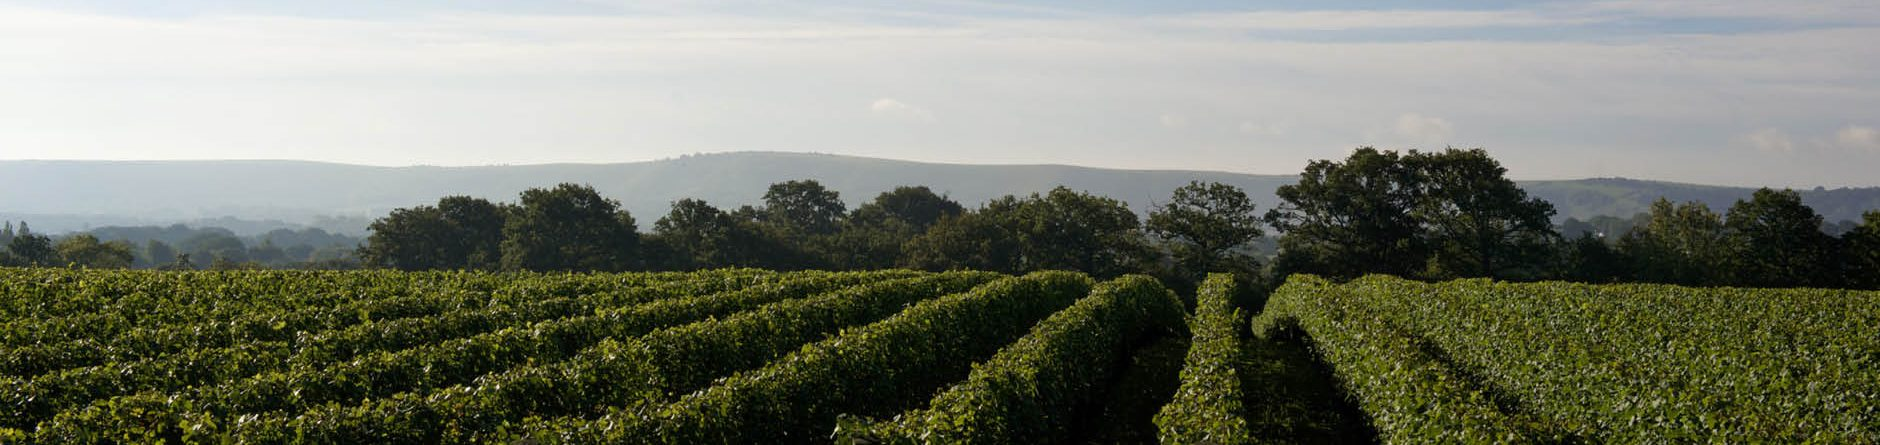 Ridgeview Wine Estate, Sussex